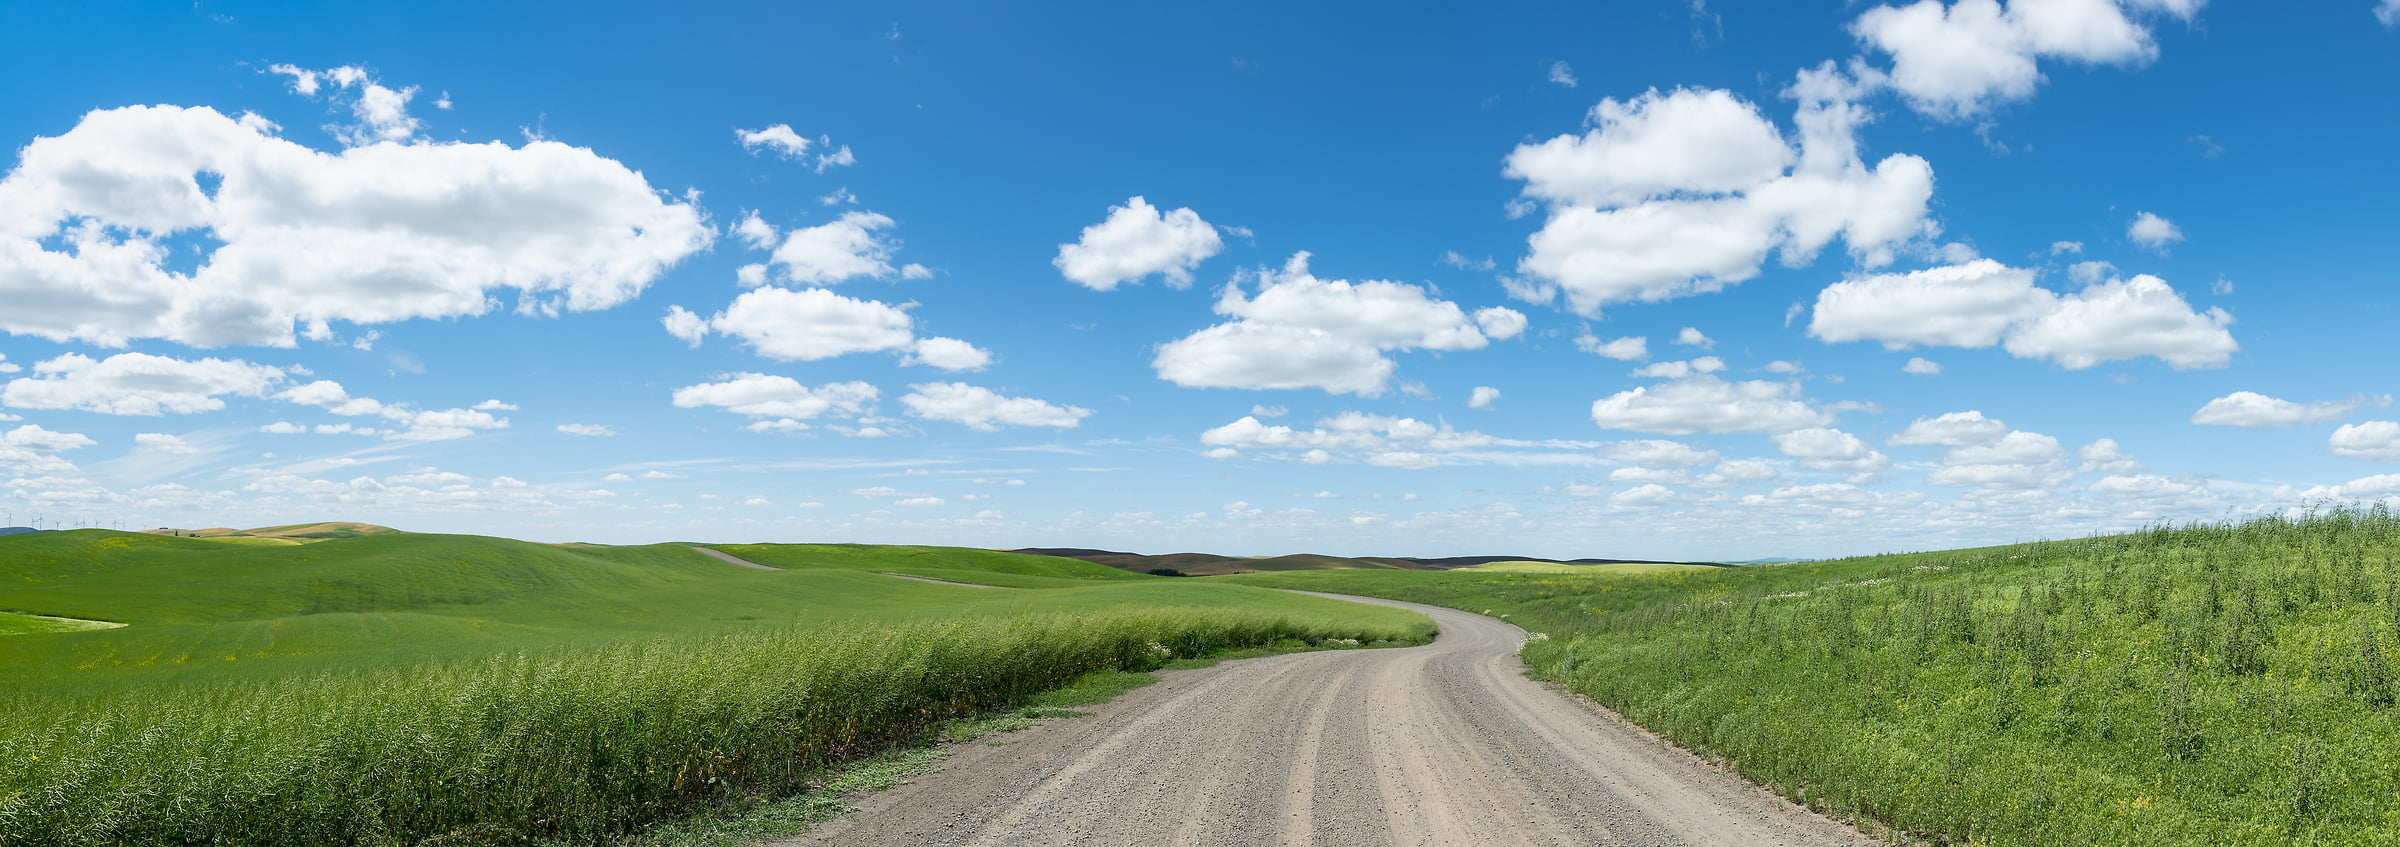 87 megapixels! A very high resolution, large-format VAST photo print of a road in farmland; landscape photograph created by Greg Probst in Palouse, Washington